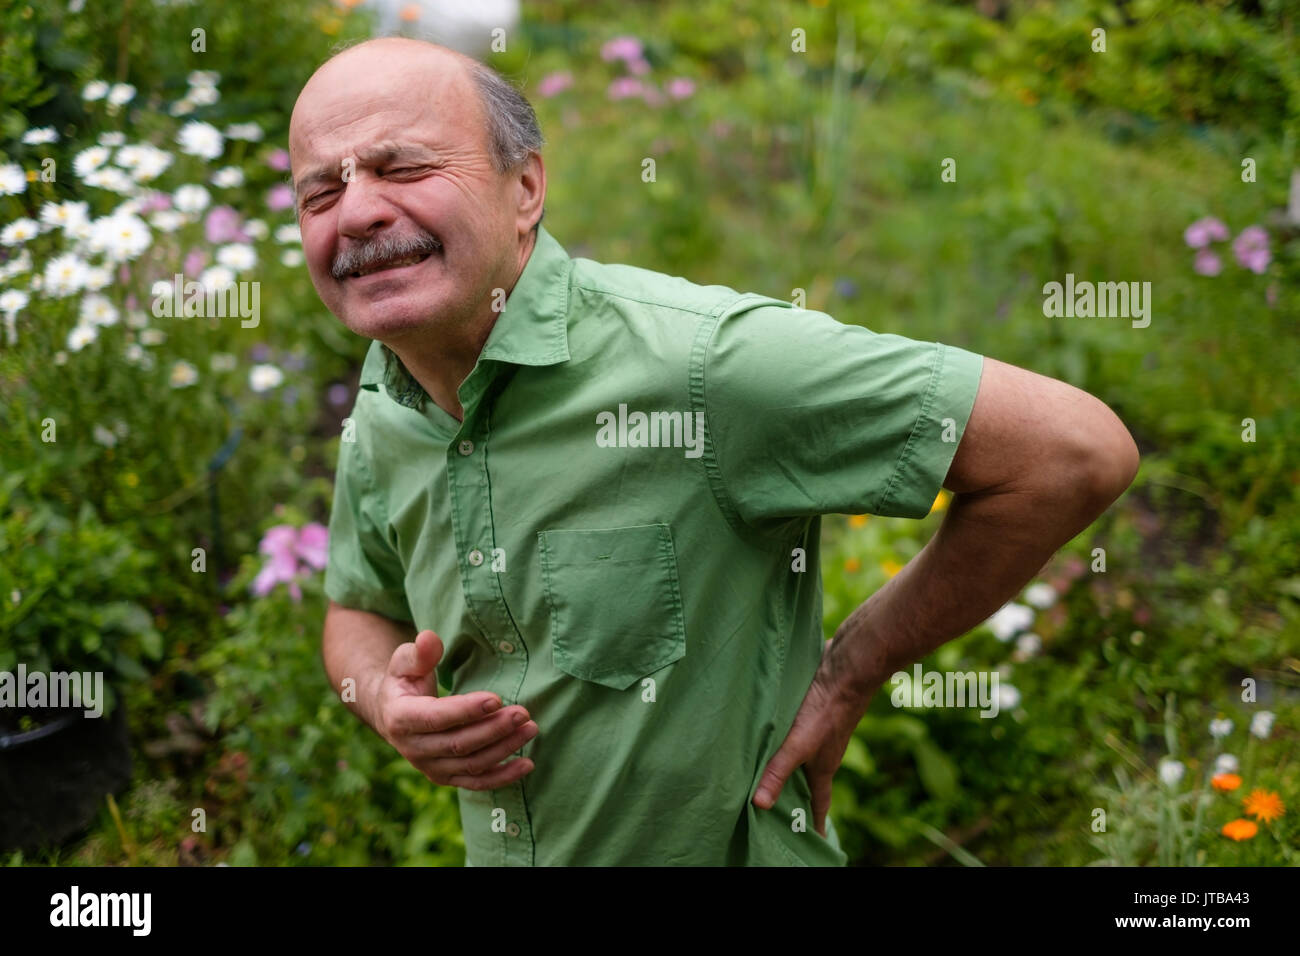 Old man having lumbago pain - Stock Image